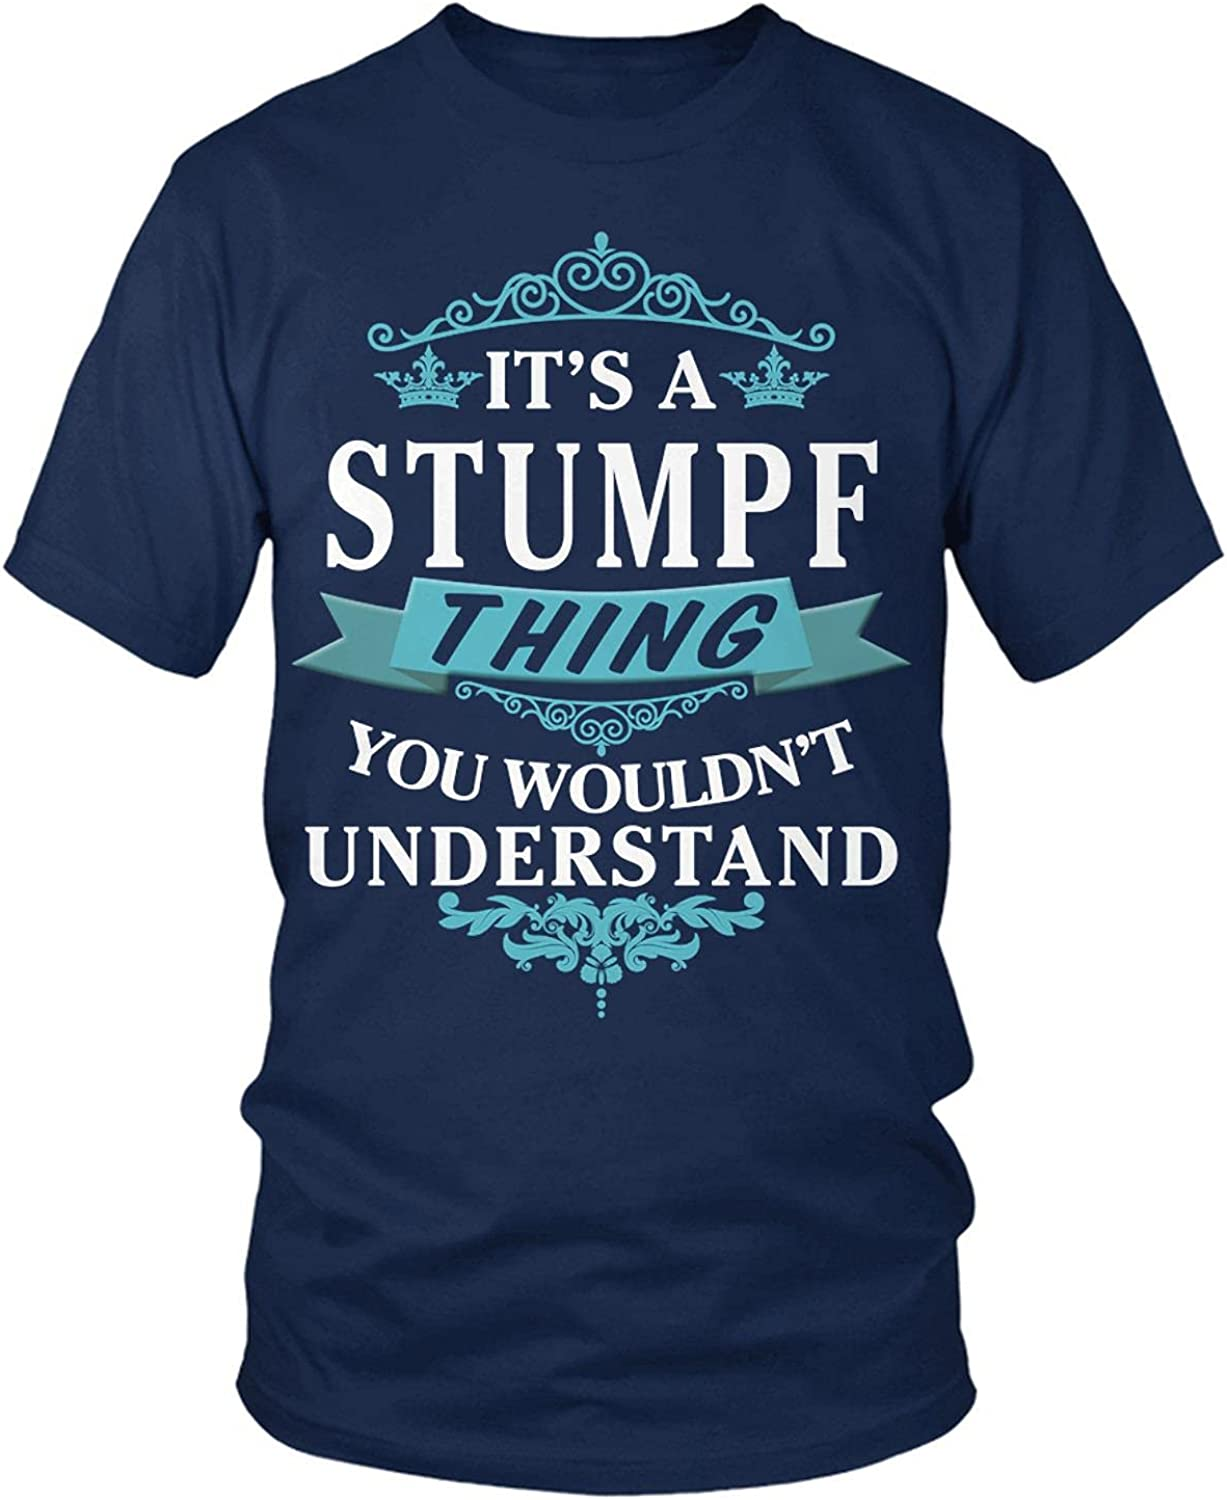 Stumpf Shirts Custom Shirt Crest Family Indianapolis Mall Lowest price challenge 63